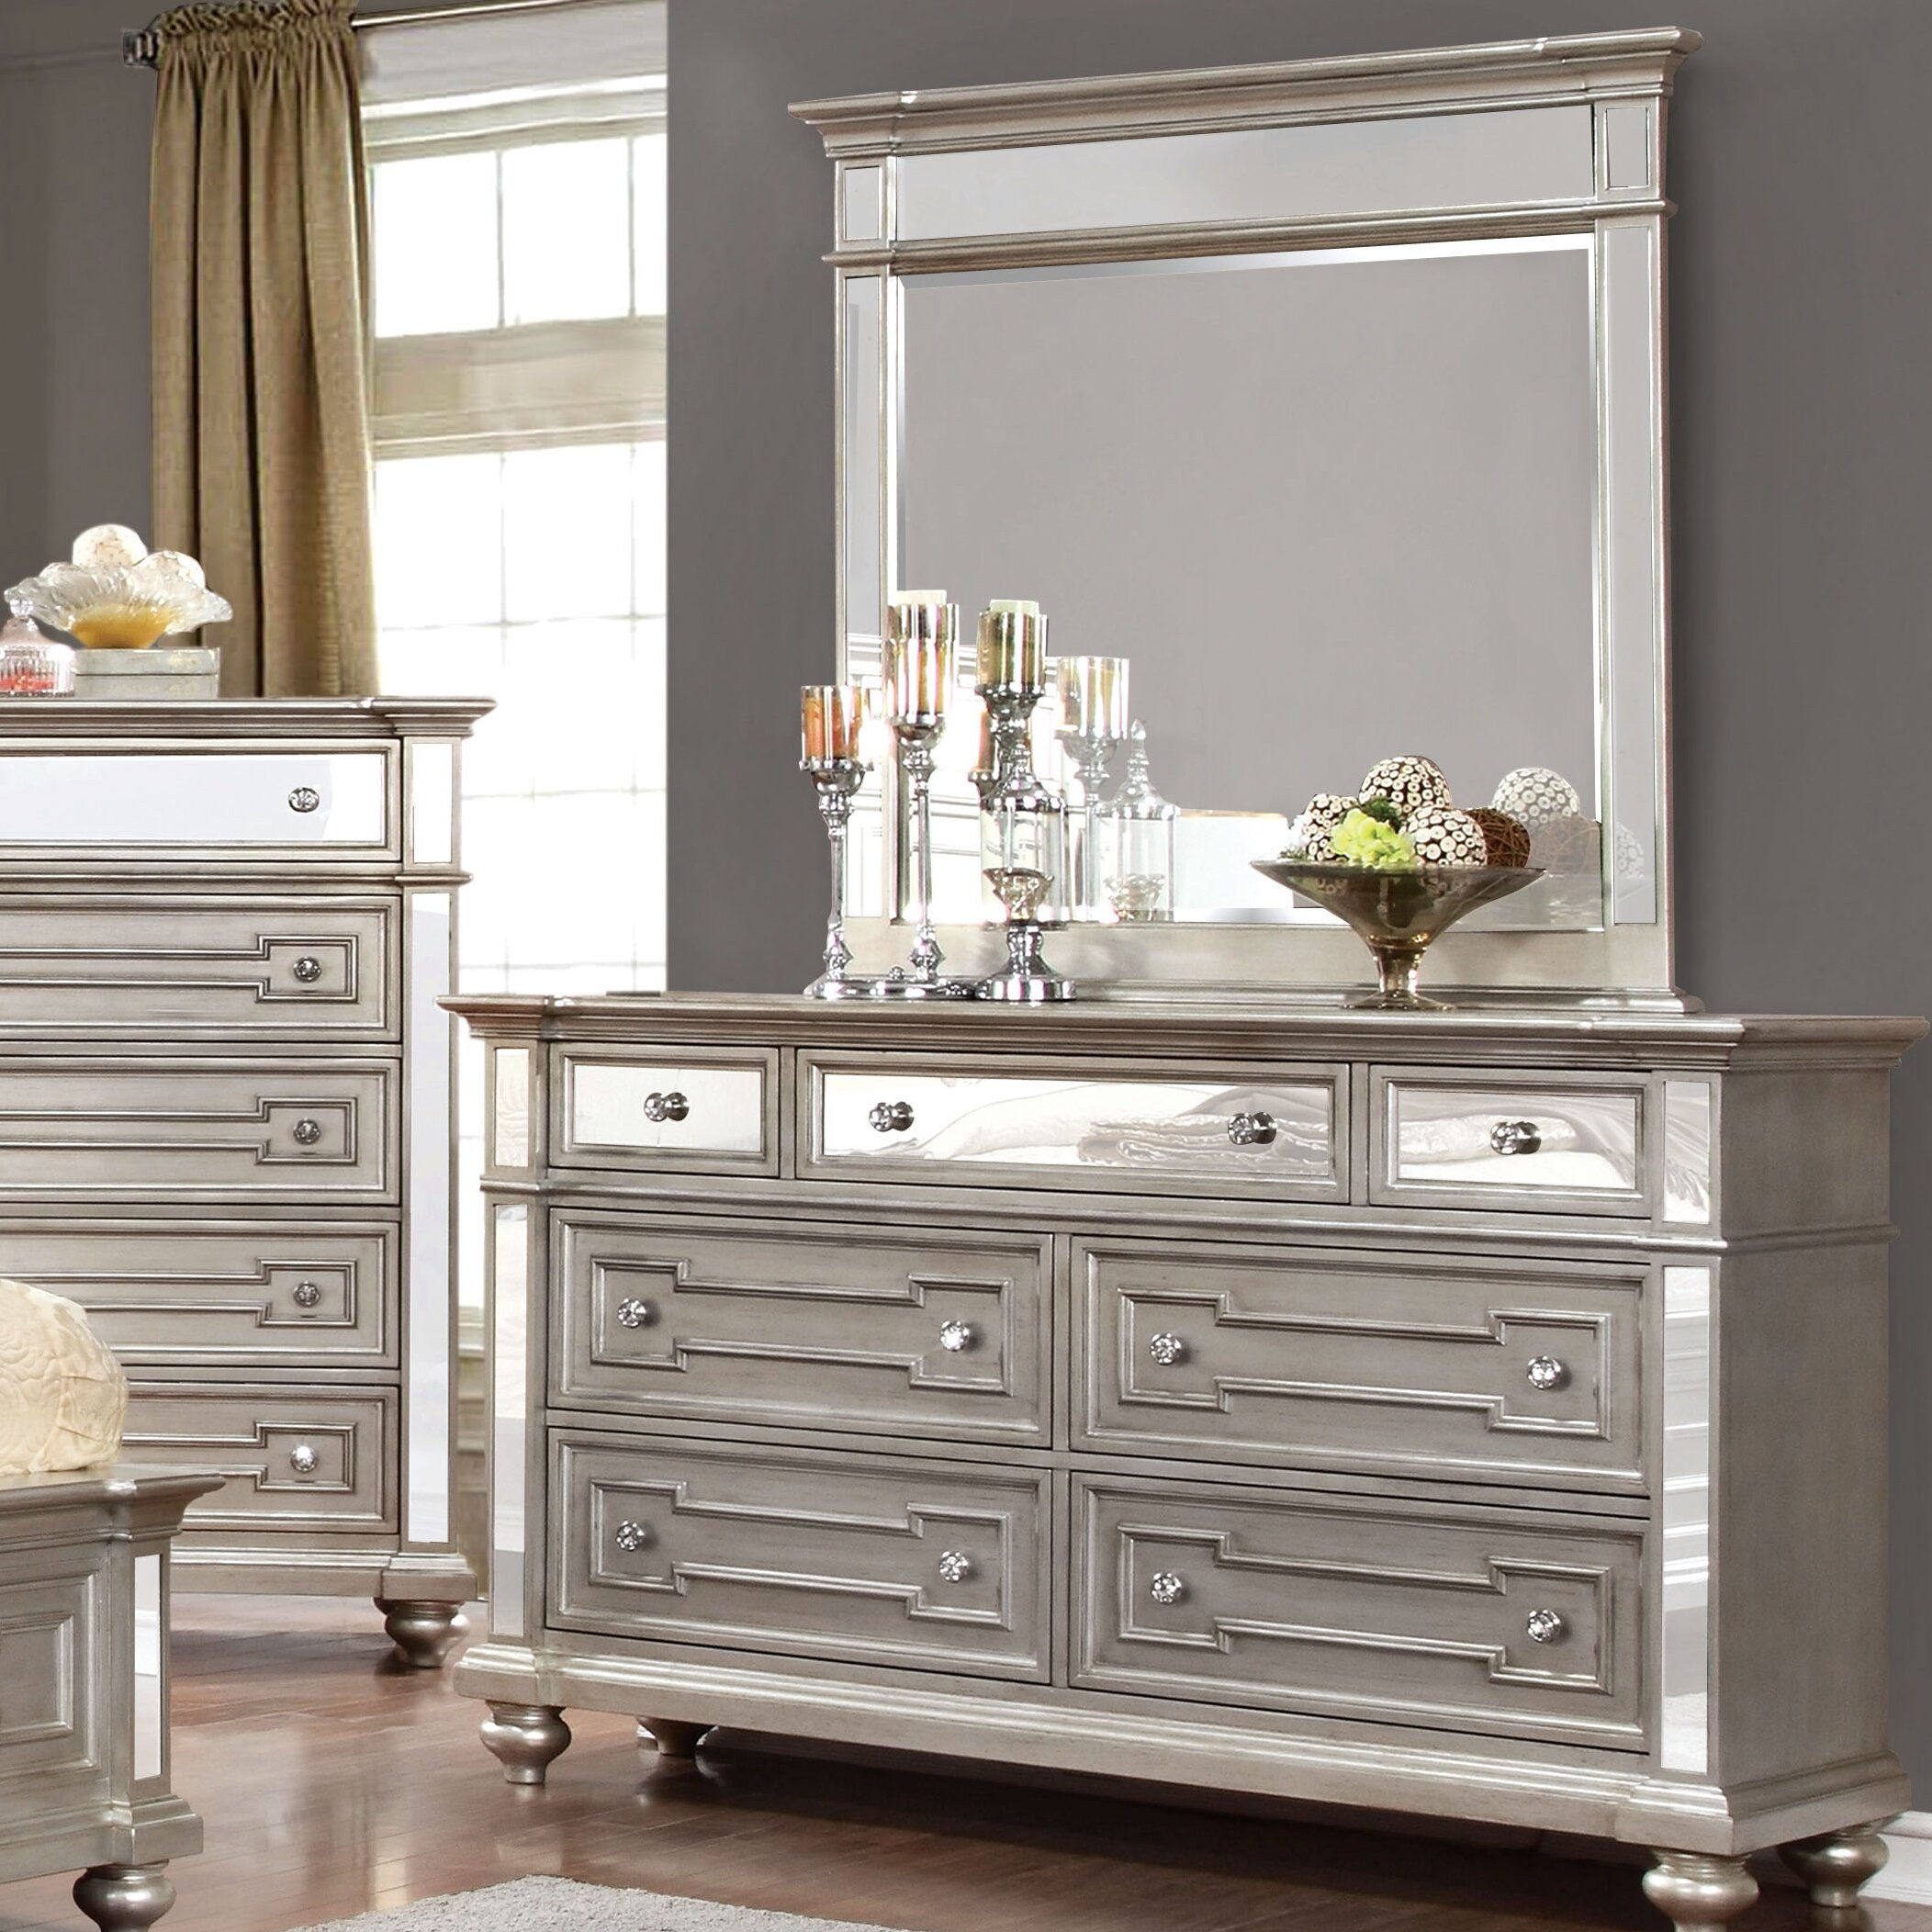 house of hampton aronson 7 drawer dresser with mirror - Aronson Furniture